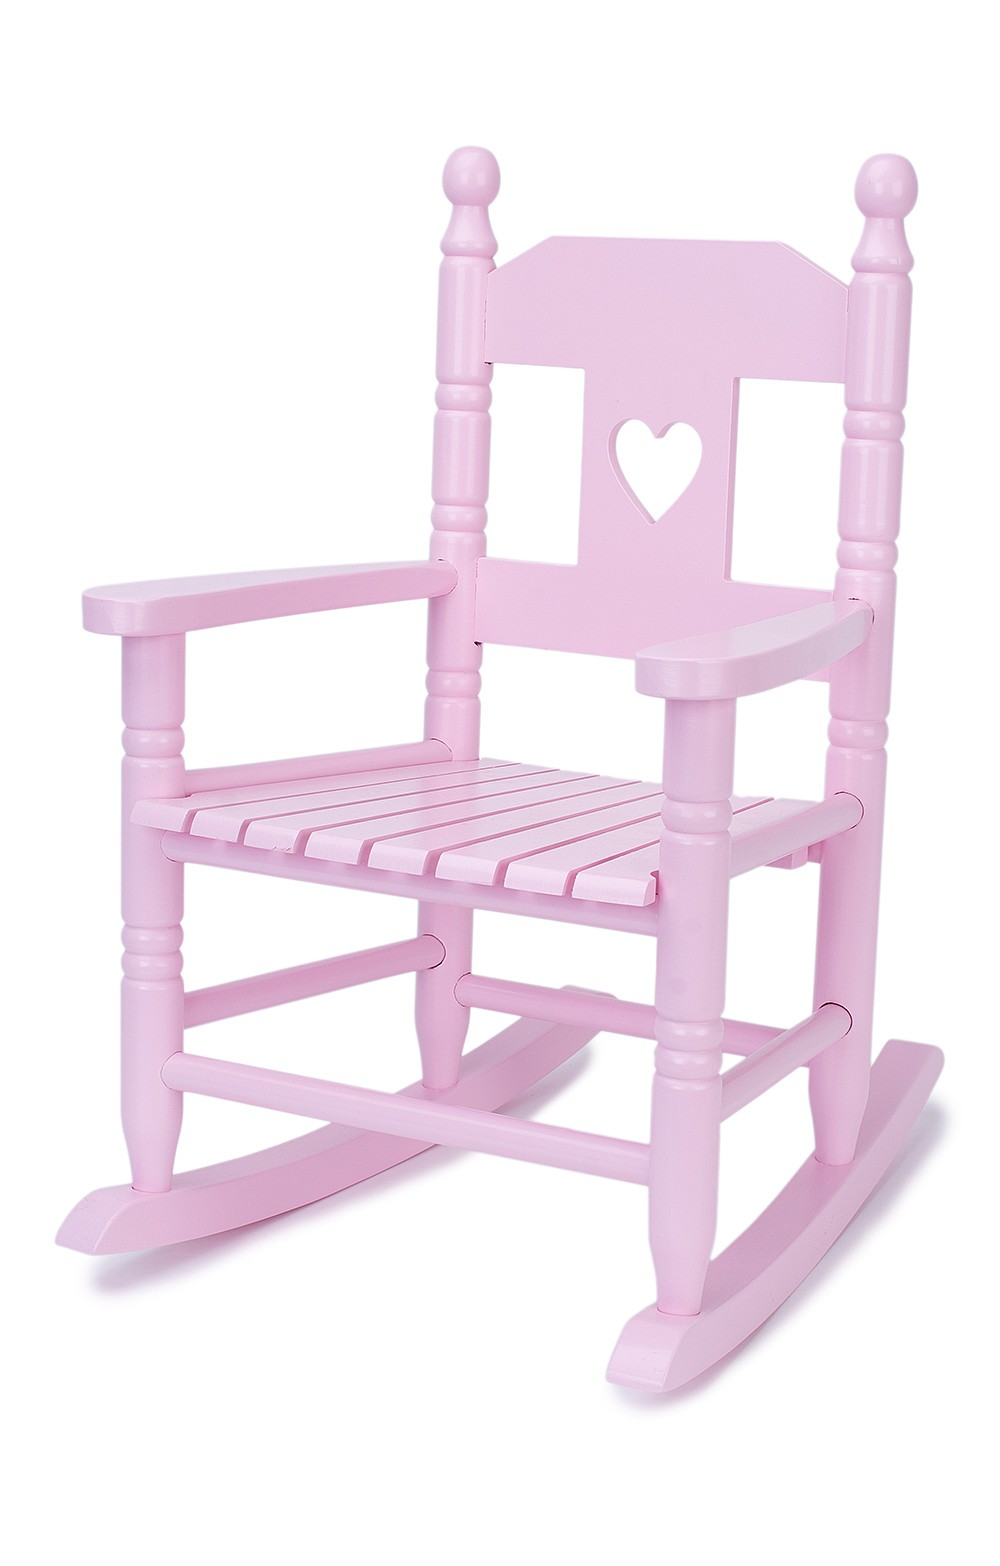 Wondrous Wooden Childs Rocking Chair Caraccident5 Cool Chair Designs And Ideas Caraccident5Info